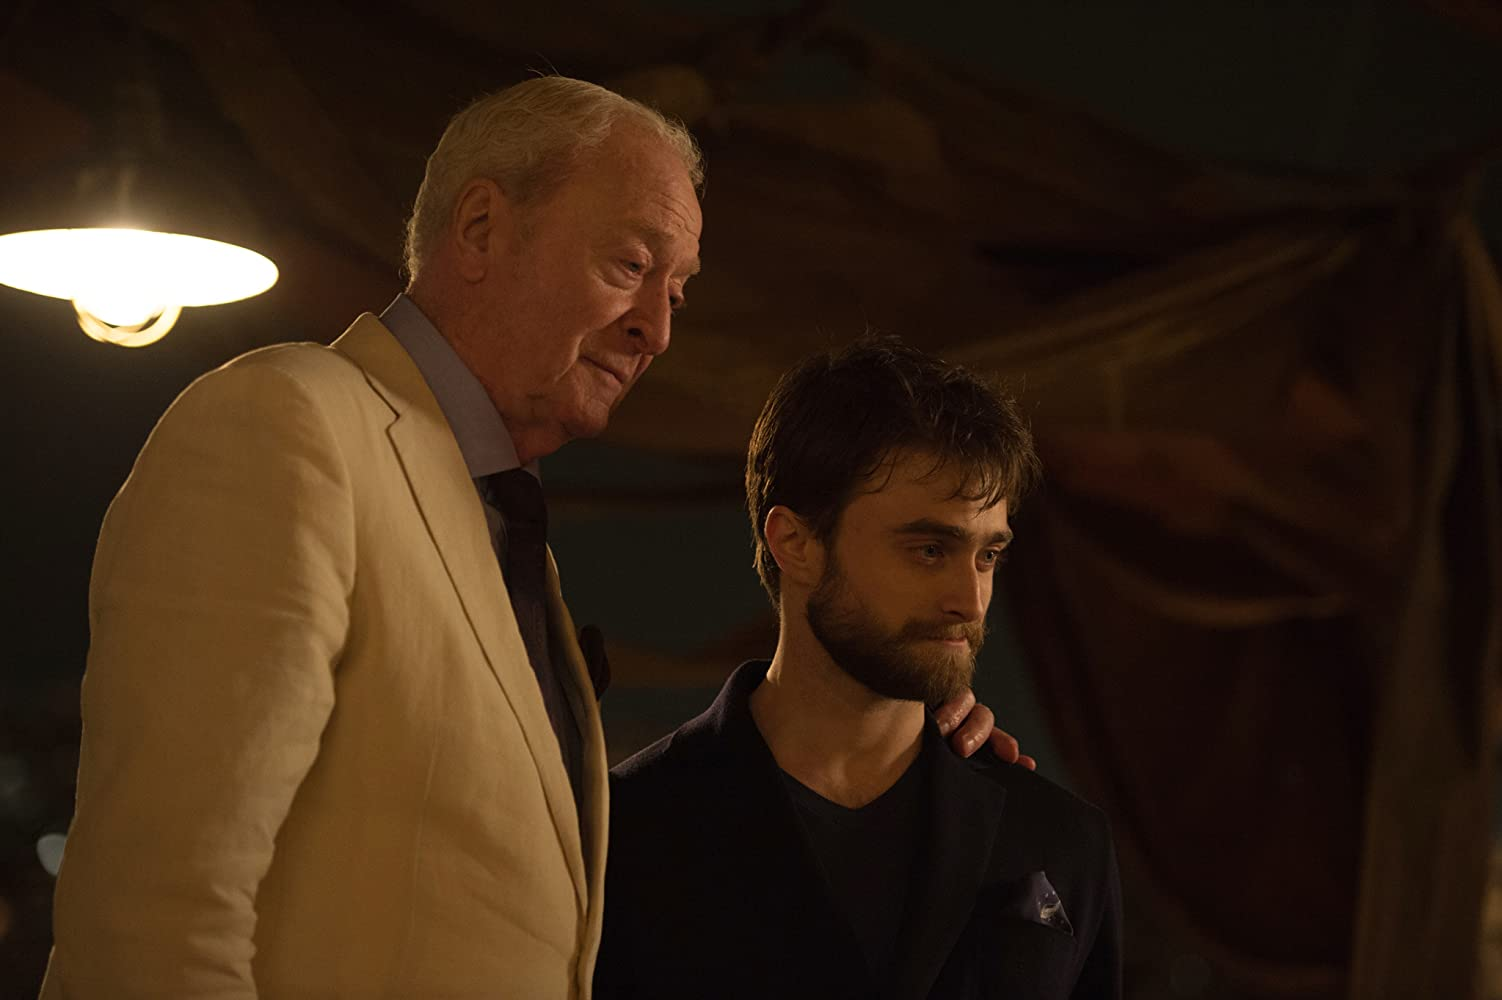 Michael Caine and Daniel Radcliffe in Now You See Me 2 (2016)